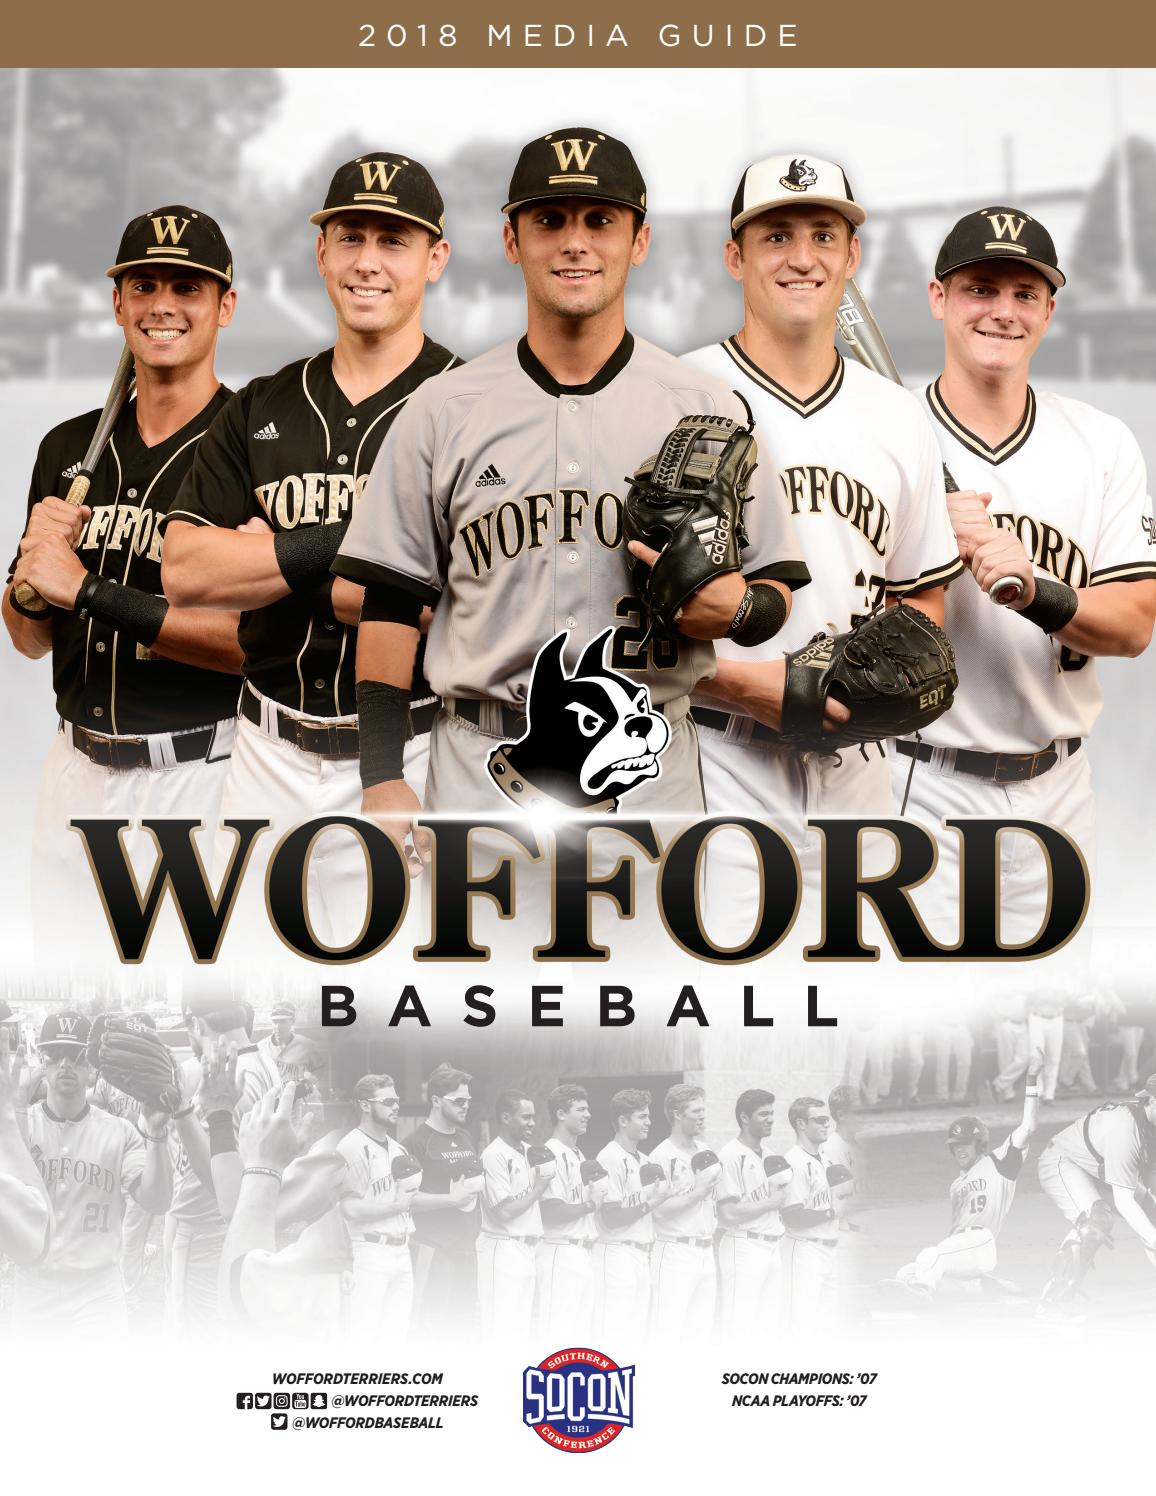 af5066d13e 2018 Wofford Baseball Media Guide by Wofford Athletics - issuu